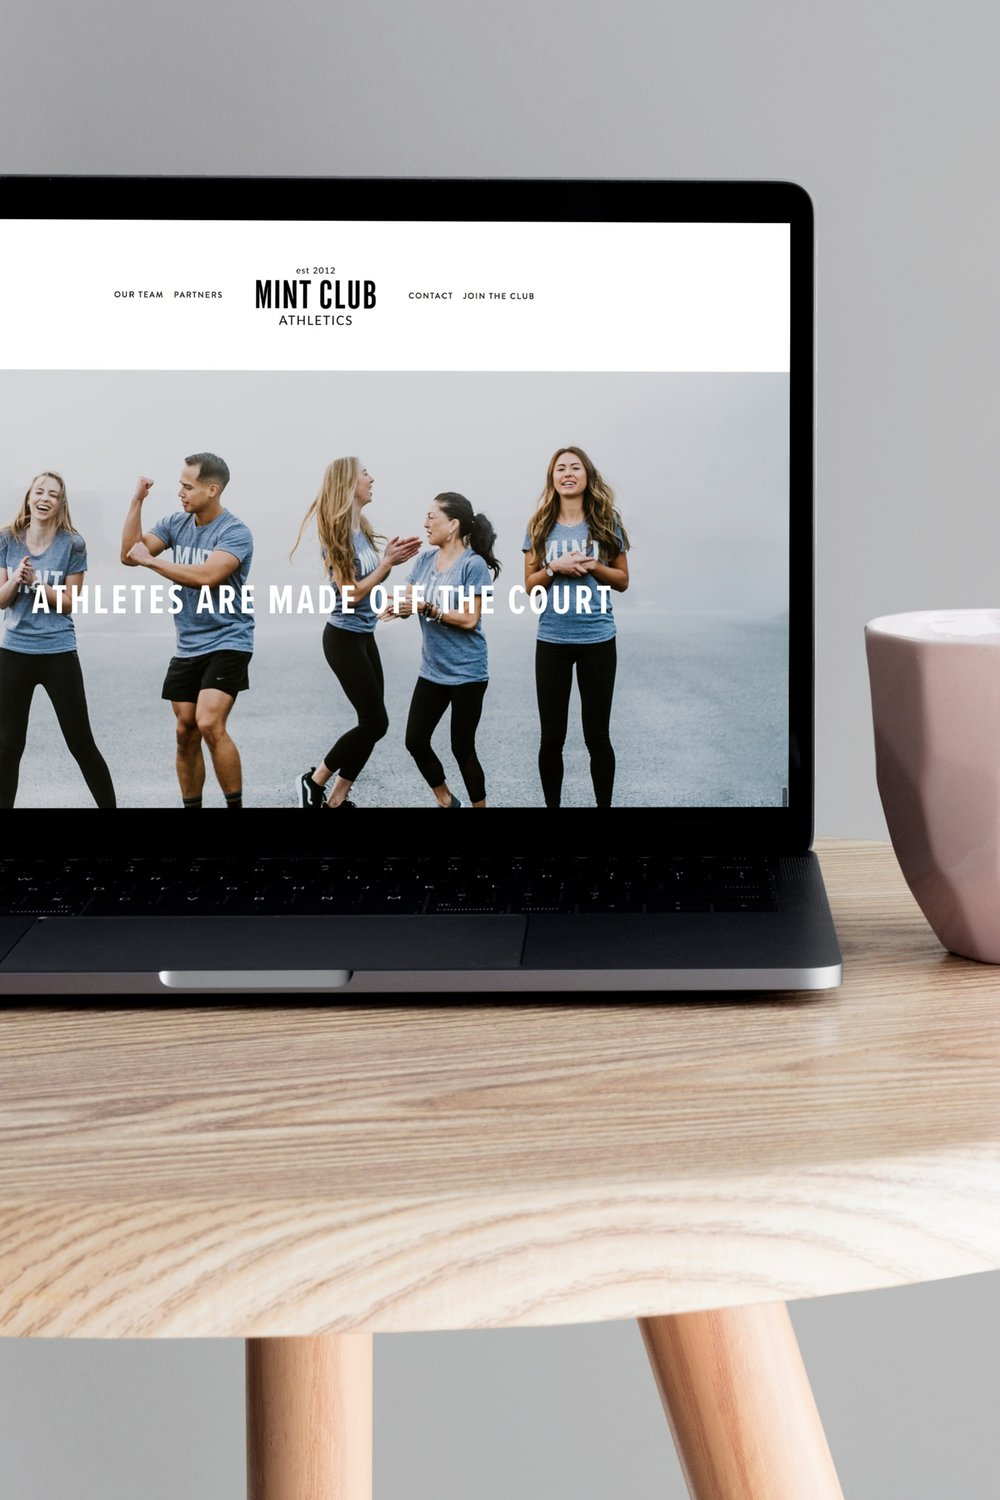 Mint+Club+Athletics+website+on+a+Macbook+Pro+next+to+a+pink+cup